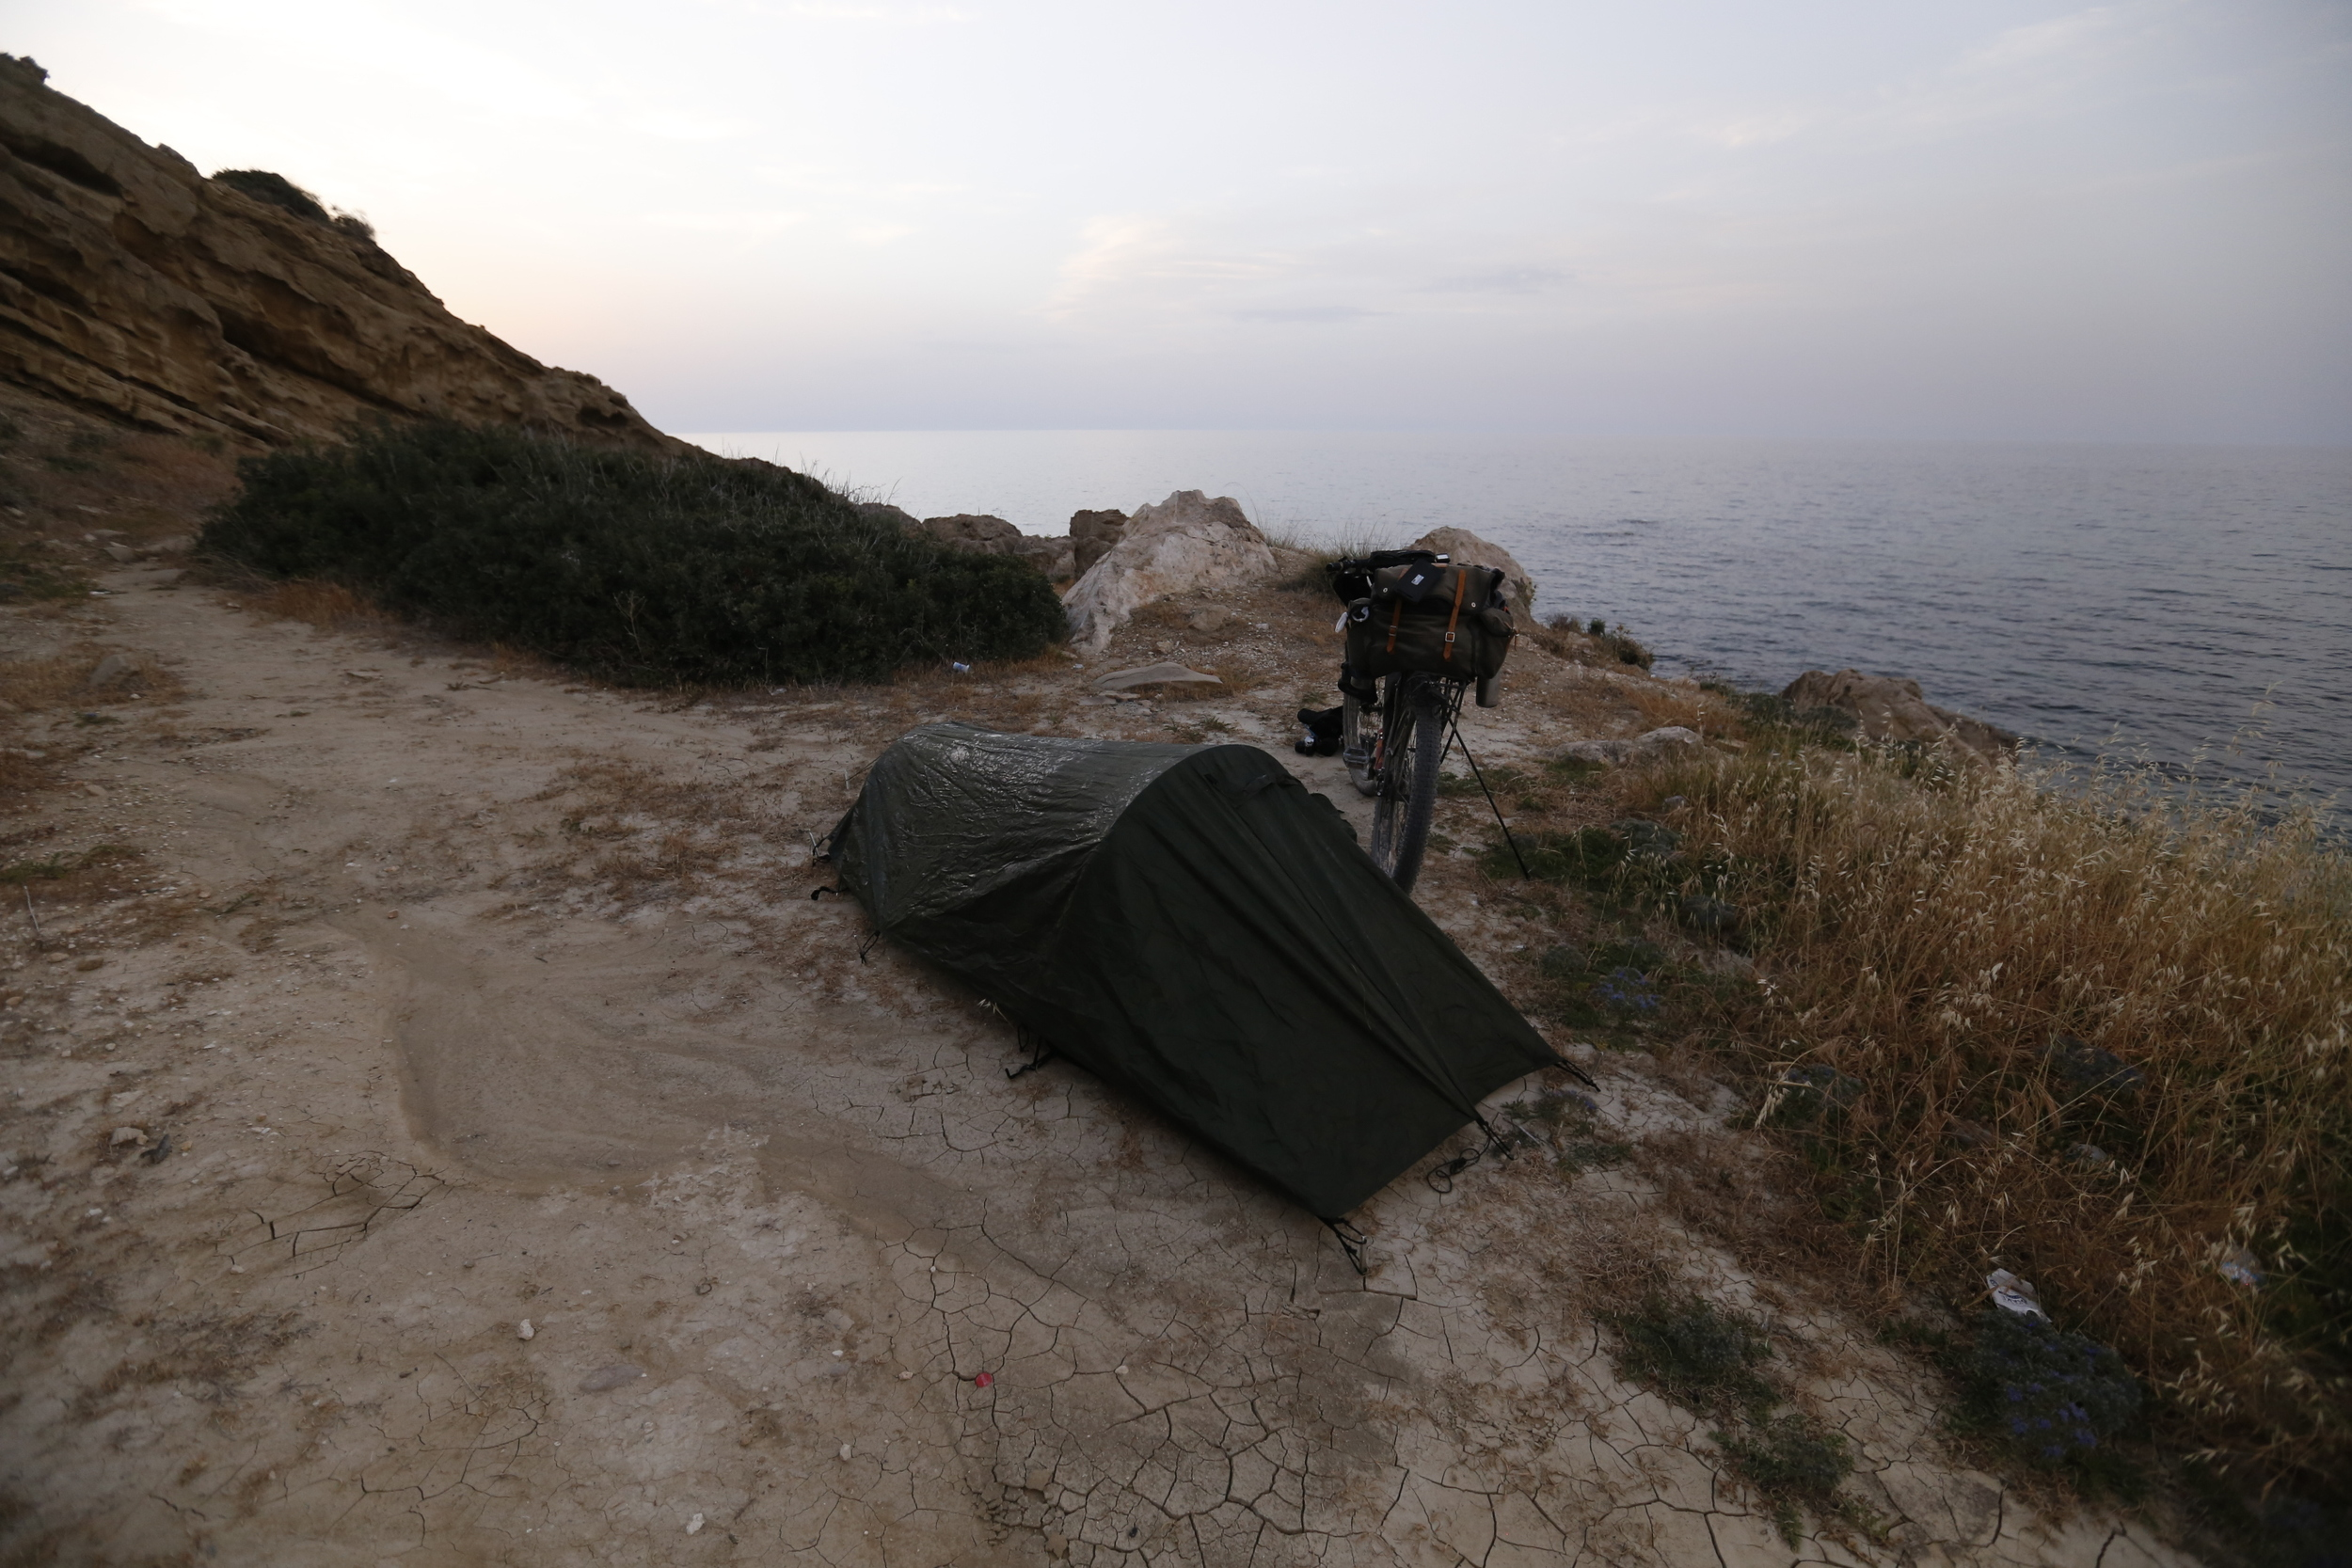 snugpak, snugpak ionosphere, ionosphere, tent, one man tent, bikepacking tent, bicycle touring tent, bikepacking shelter, touring bike, north cyprus, travel, jack macgowan, bicycle touring apocalypse, go north cyprus, surly, surly bikes, surly ecr, steel frame, kyrenia, kyrenia mountains, kyrenia mountain trail, klean kanteen, klean kanteen classic, wildcat gear, trangia, carradice, garmin, garmin edge